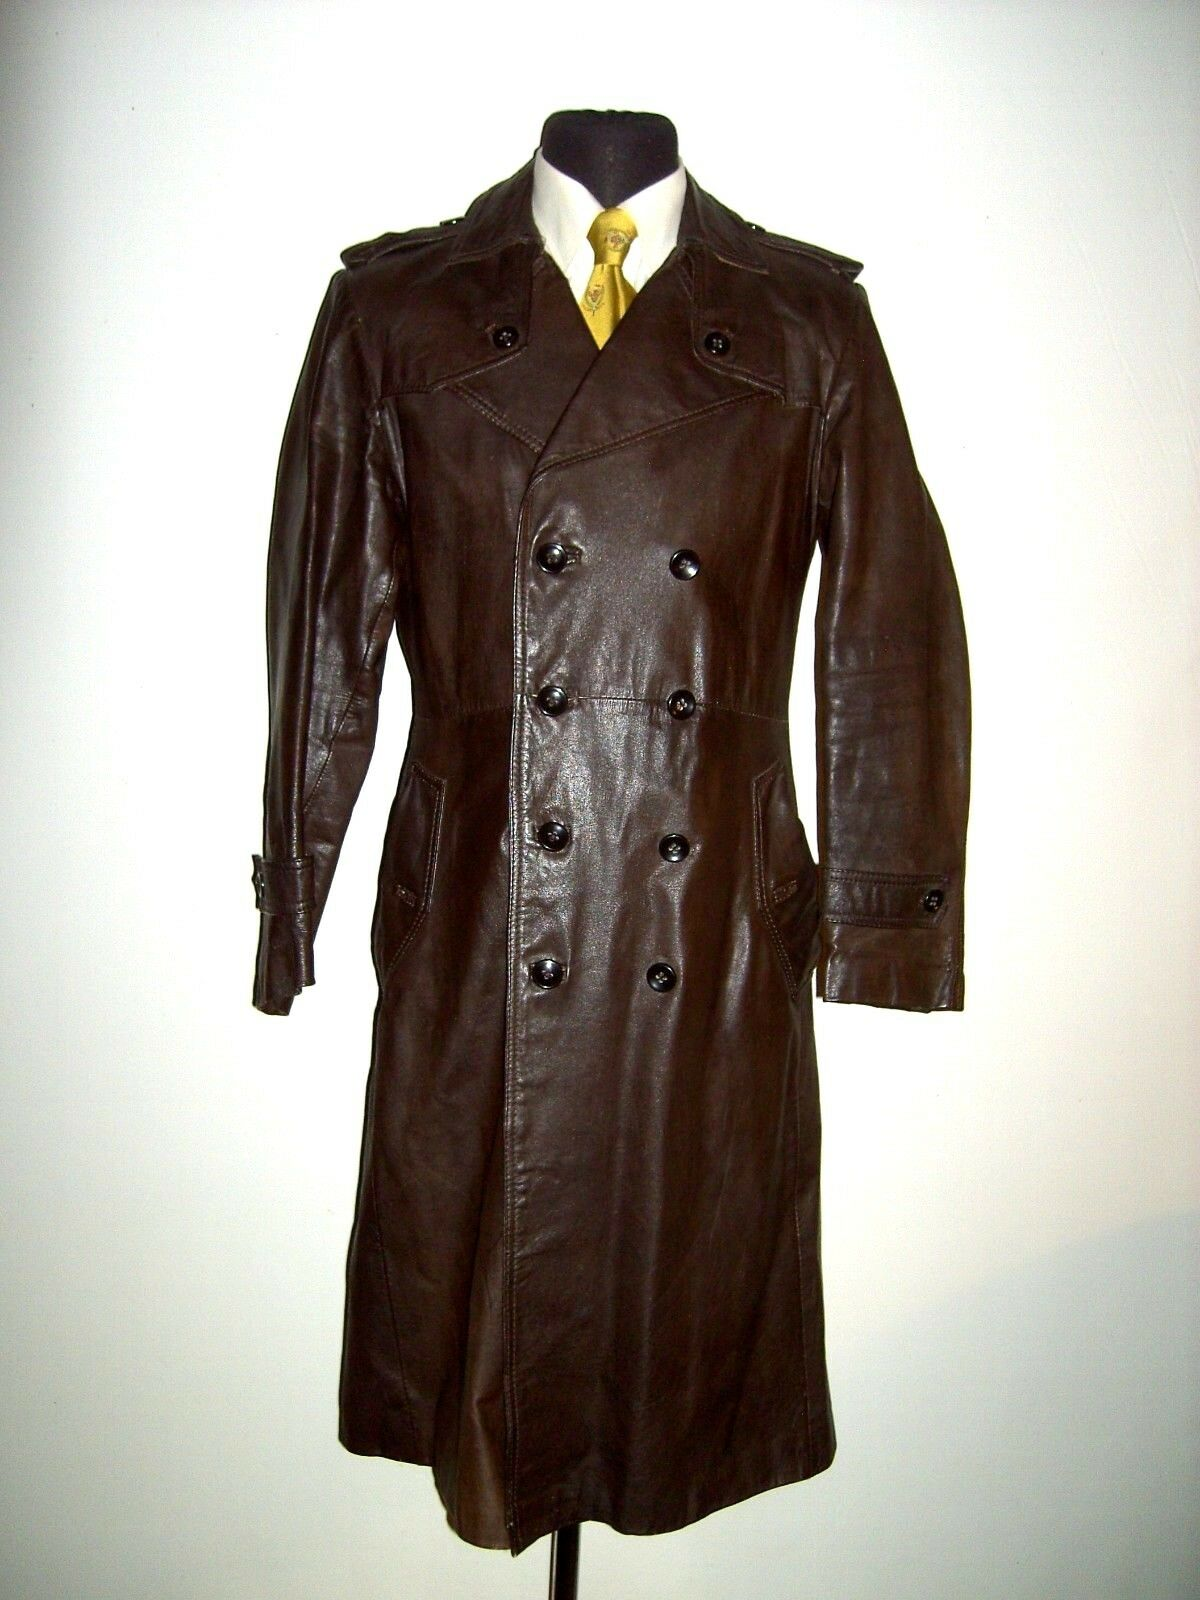 VTG MILITAR OFFICER LONG TAN LEATHER DOUBLE BREASTED COAT TRENCH MAC 40